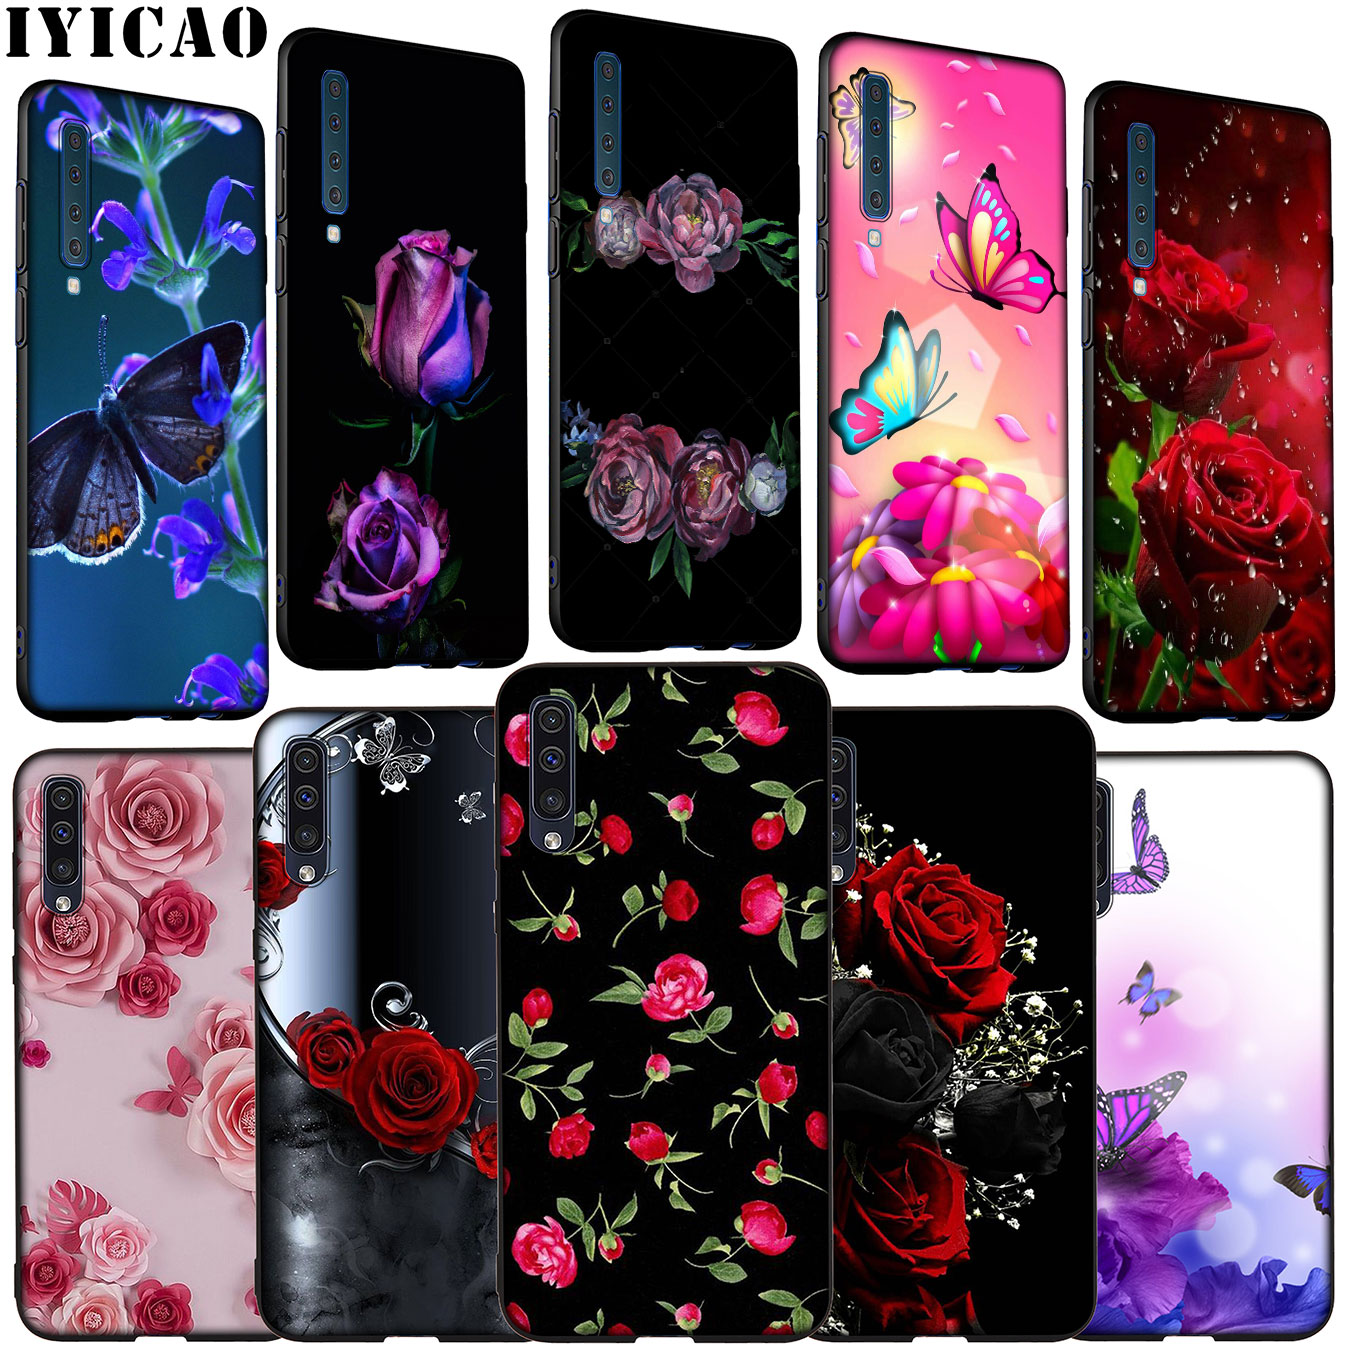 IYICAO <font><b>flower</b></font> red Pink rose Colorful Soft Silicone <font><b>Case</b></font> for <font><b>Samsung</b></font> <font><b>Galaxy</b></font> <font><b>A70</b></font> A60 A50 A40 A30 A20 A10 M10 M20 M30 M40 A20E image